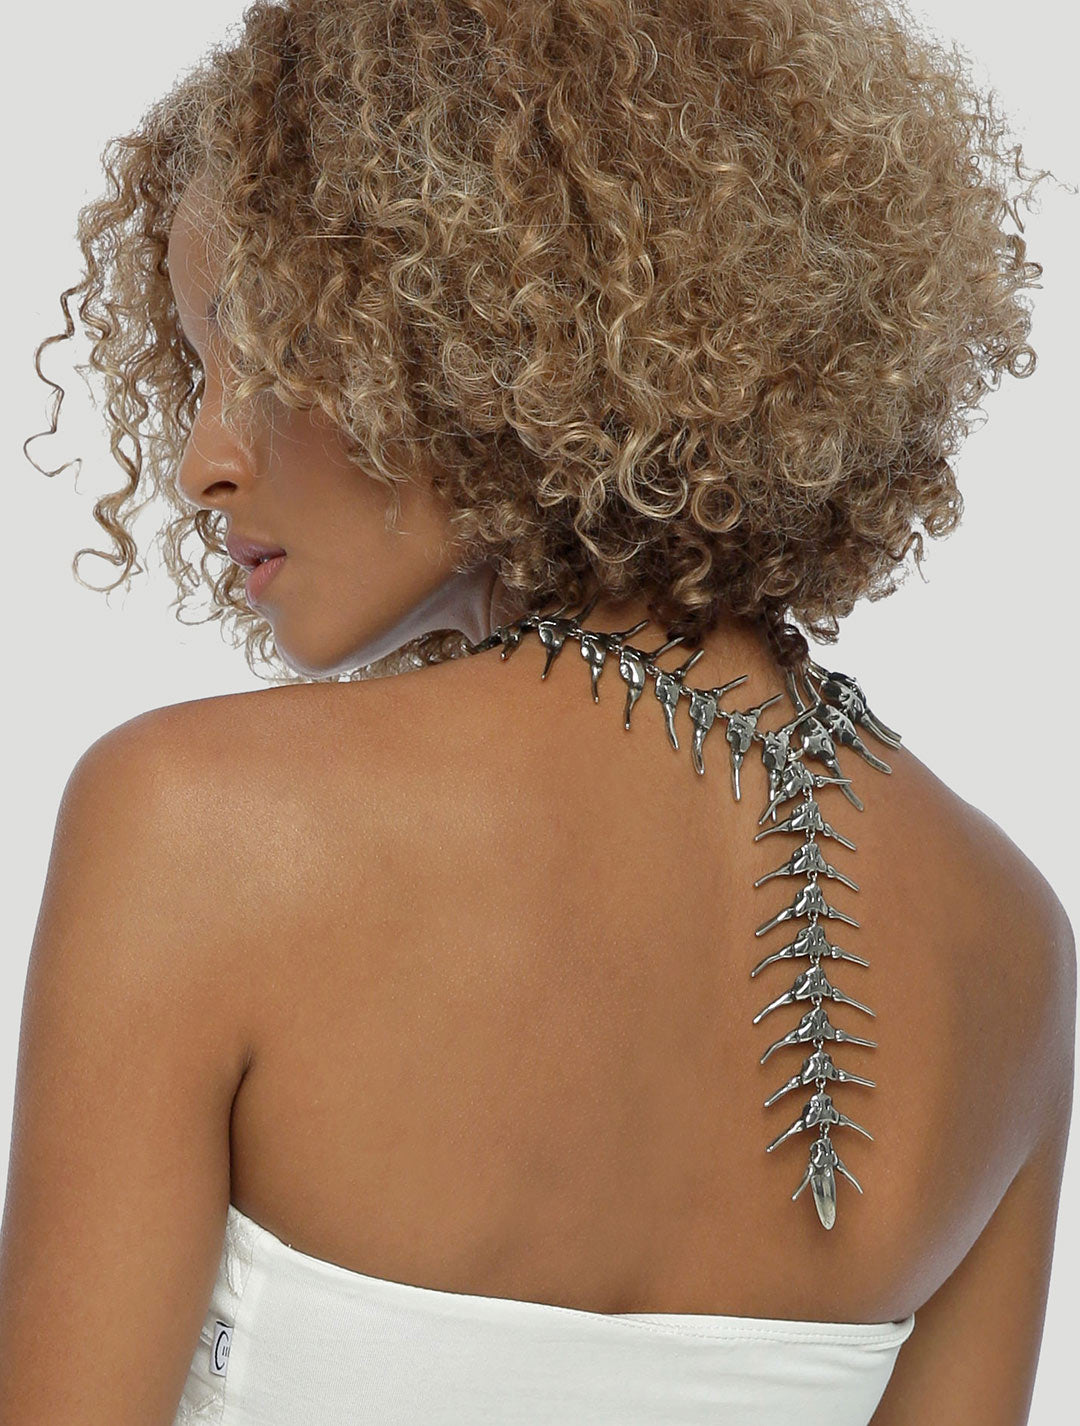 The Centipede Monster Neckpiece by Costume Therapy - Psylo Fashion